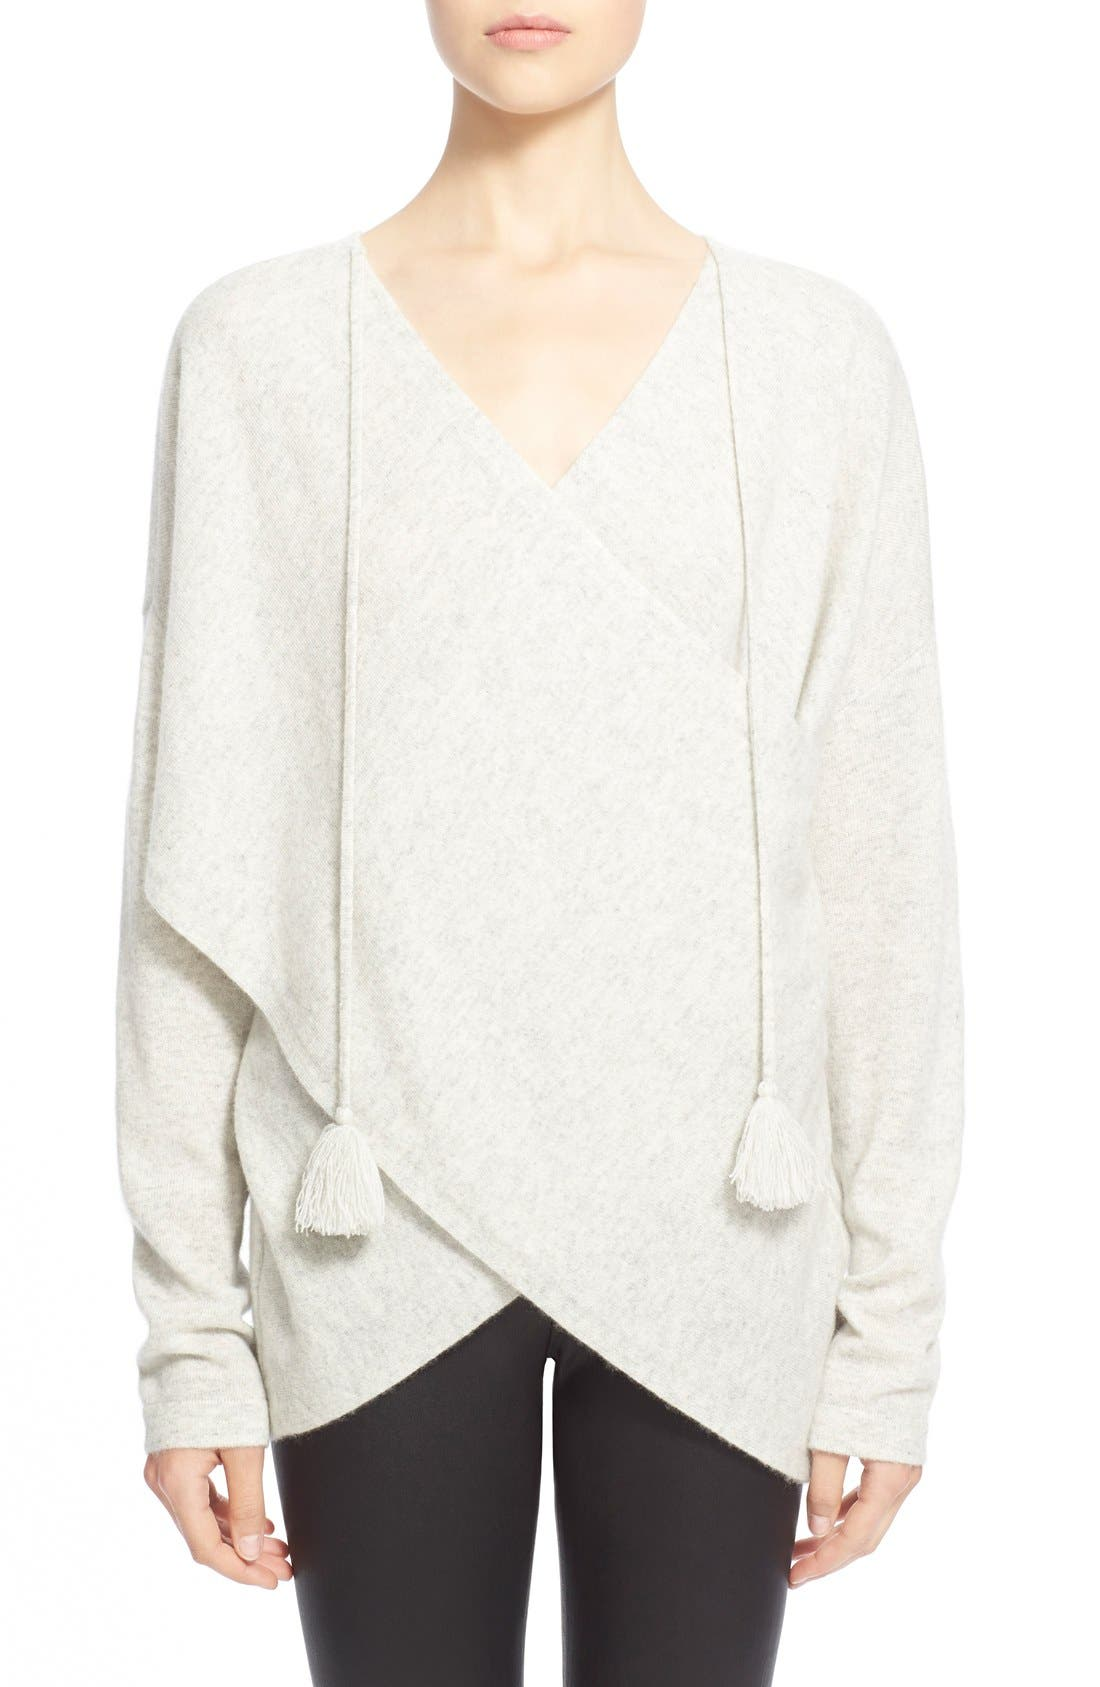 Alternate Image 1 Selected - Derek Lam 10 Crosby Tasseled Cross Front Cashmere Sweater